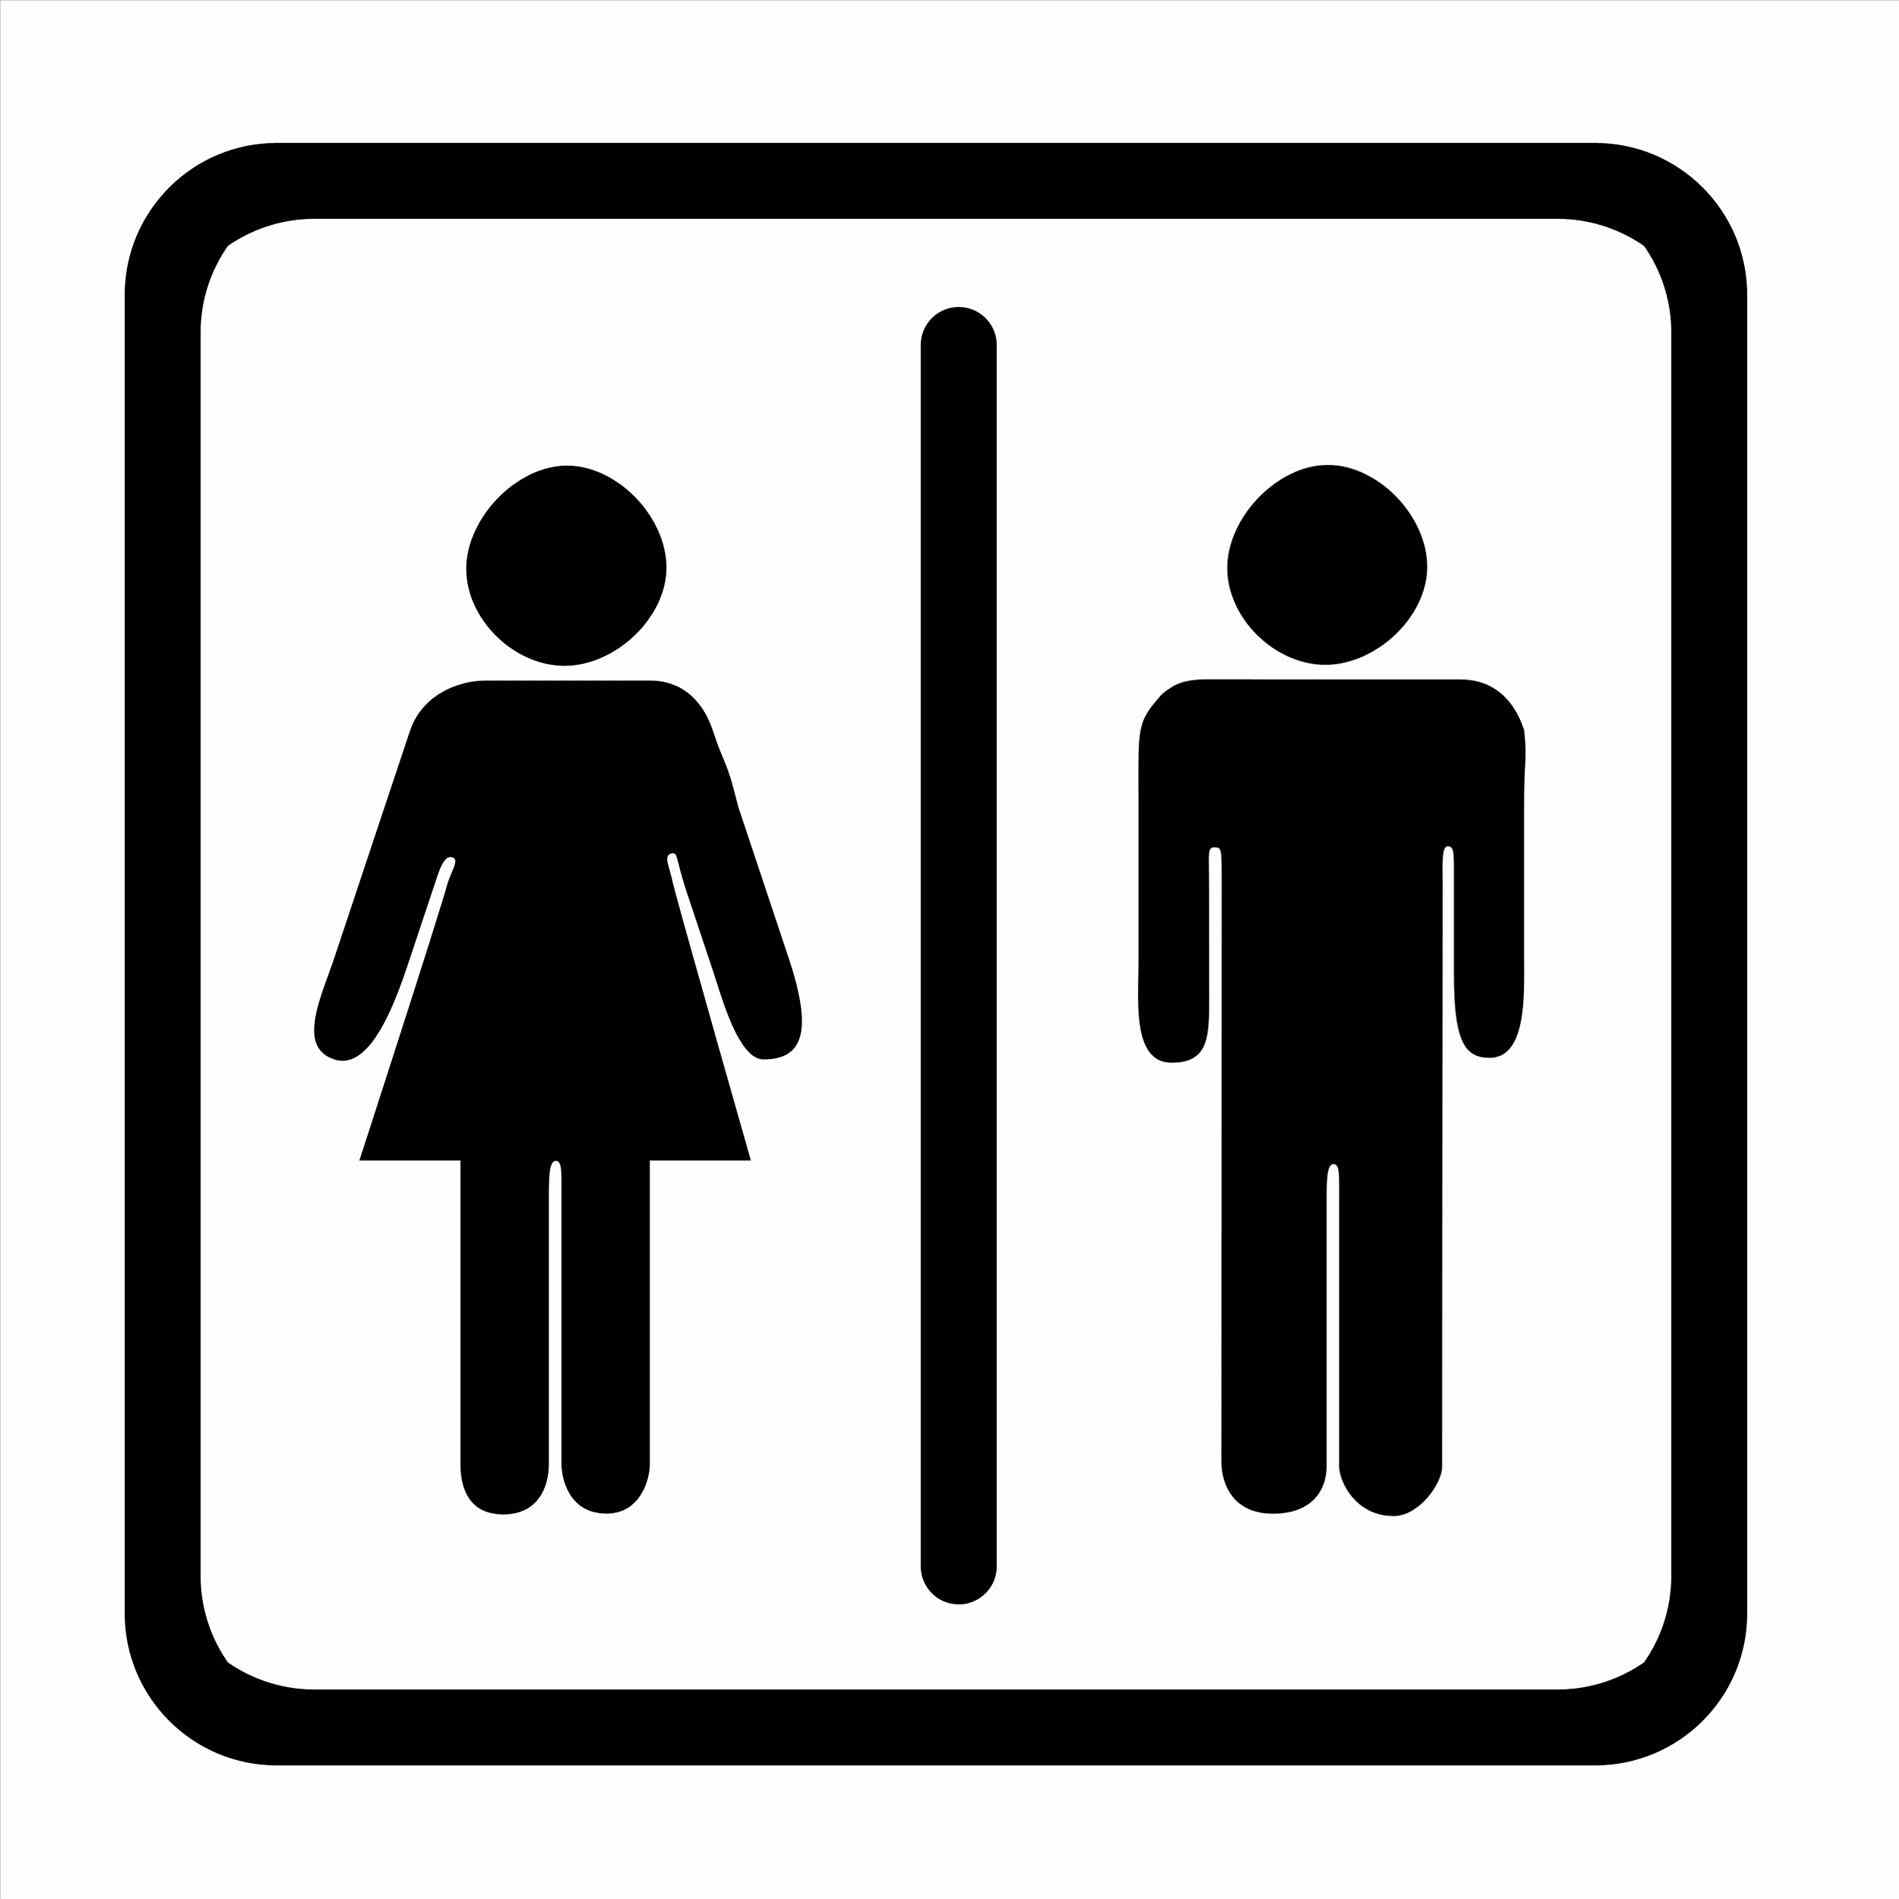 graphic about Bathroom Sign Printable titled Toilet Signs and symptoms Clipart Free of charge obtain great Rest room Signs and symptoms